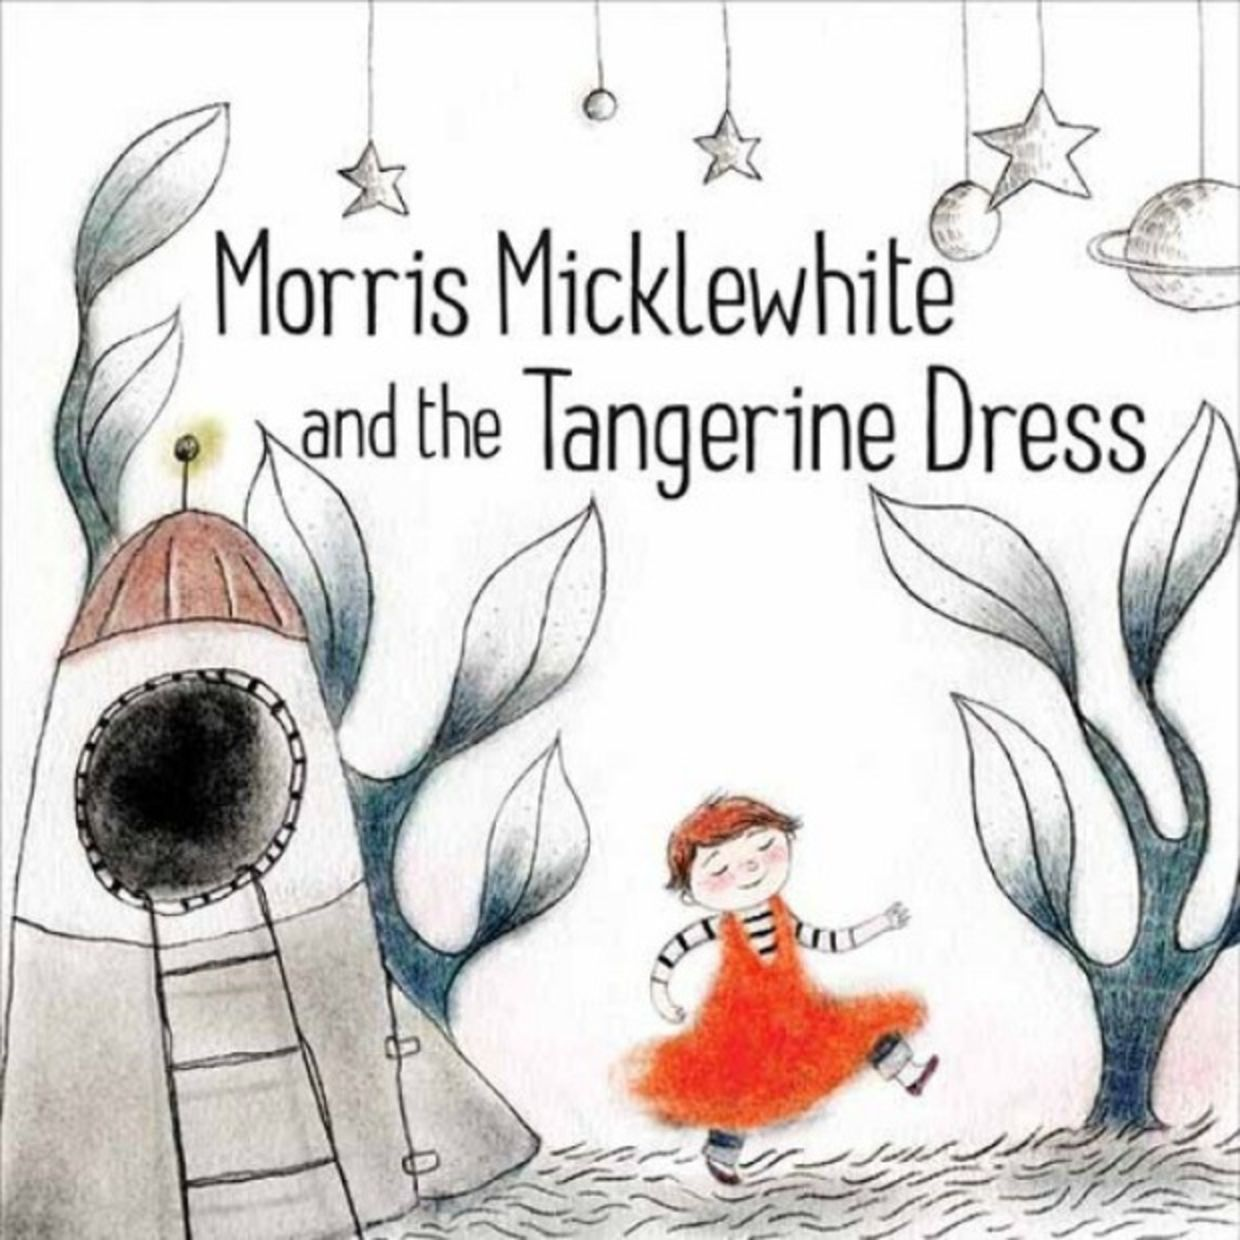 Morris Micklewhite and the Tangerine Dress is a children's book that redefines gender roles